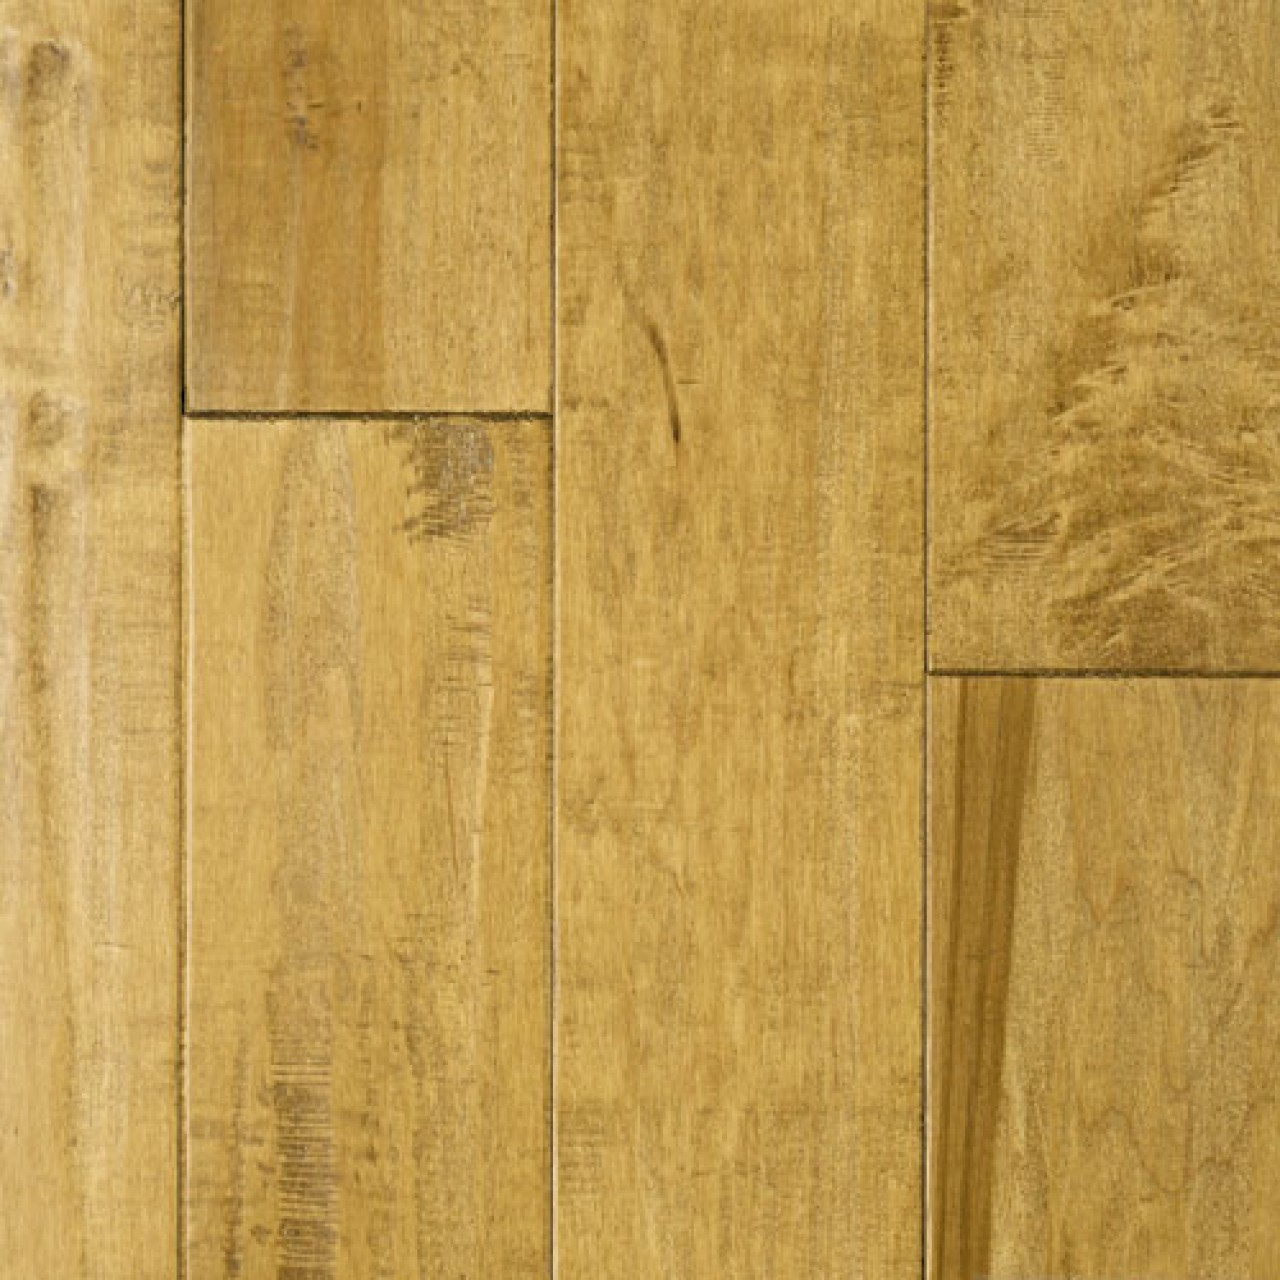 american-maple-handscraped-hardwood.jpg